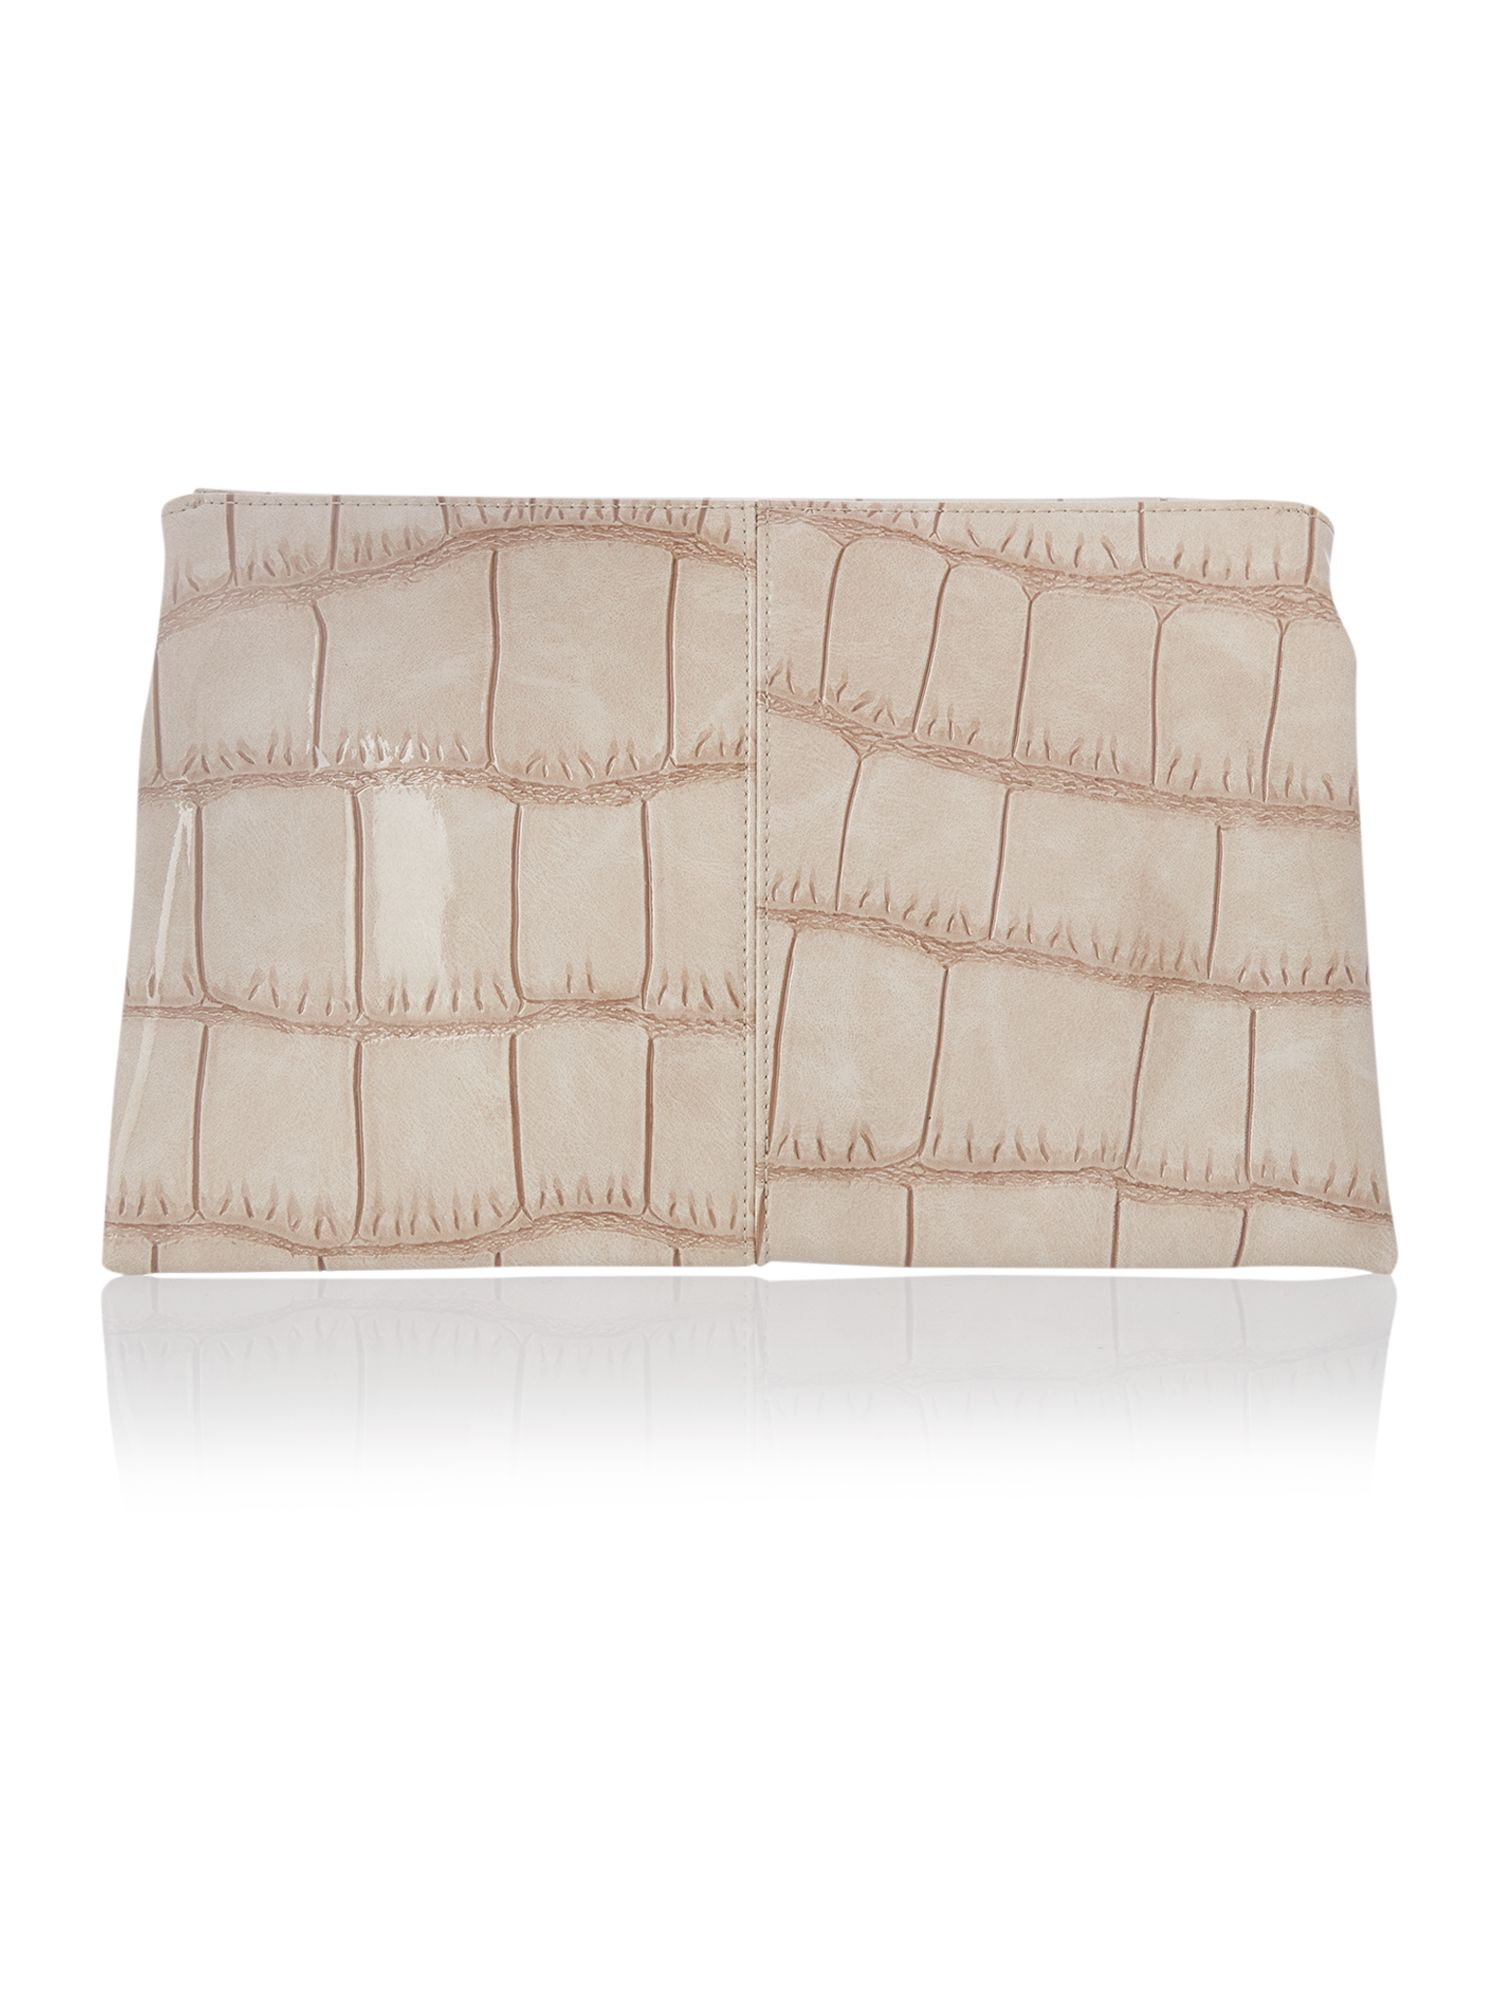 Tan patent envelope clutch